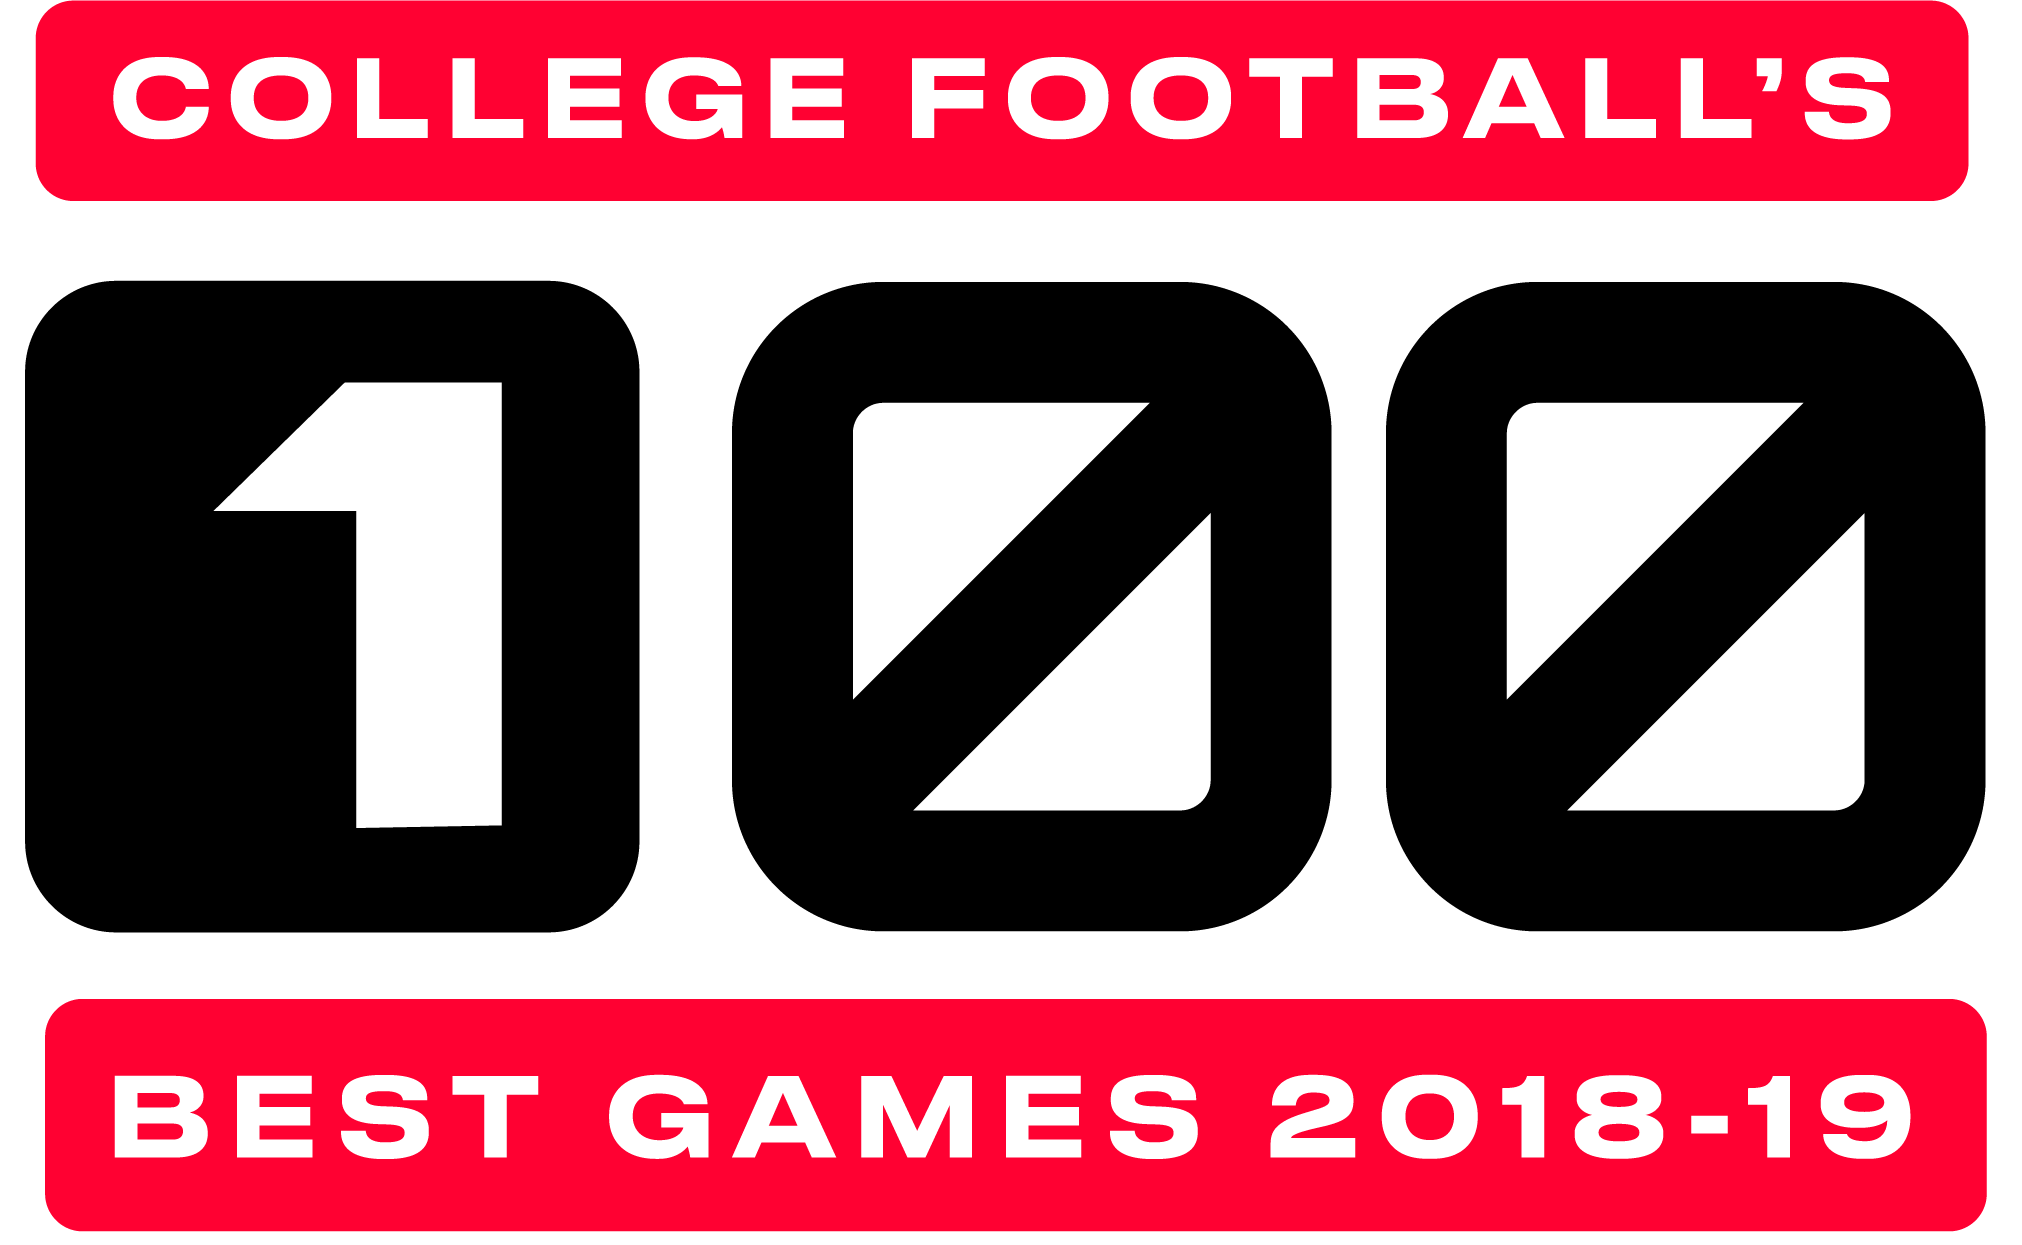 College Football's 100 Best Games of 2018-19